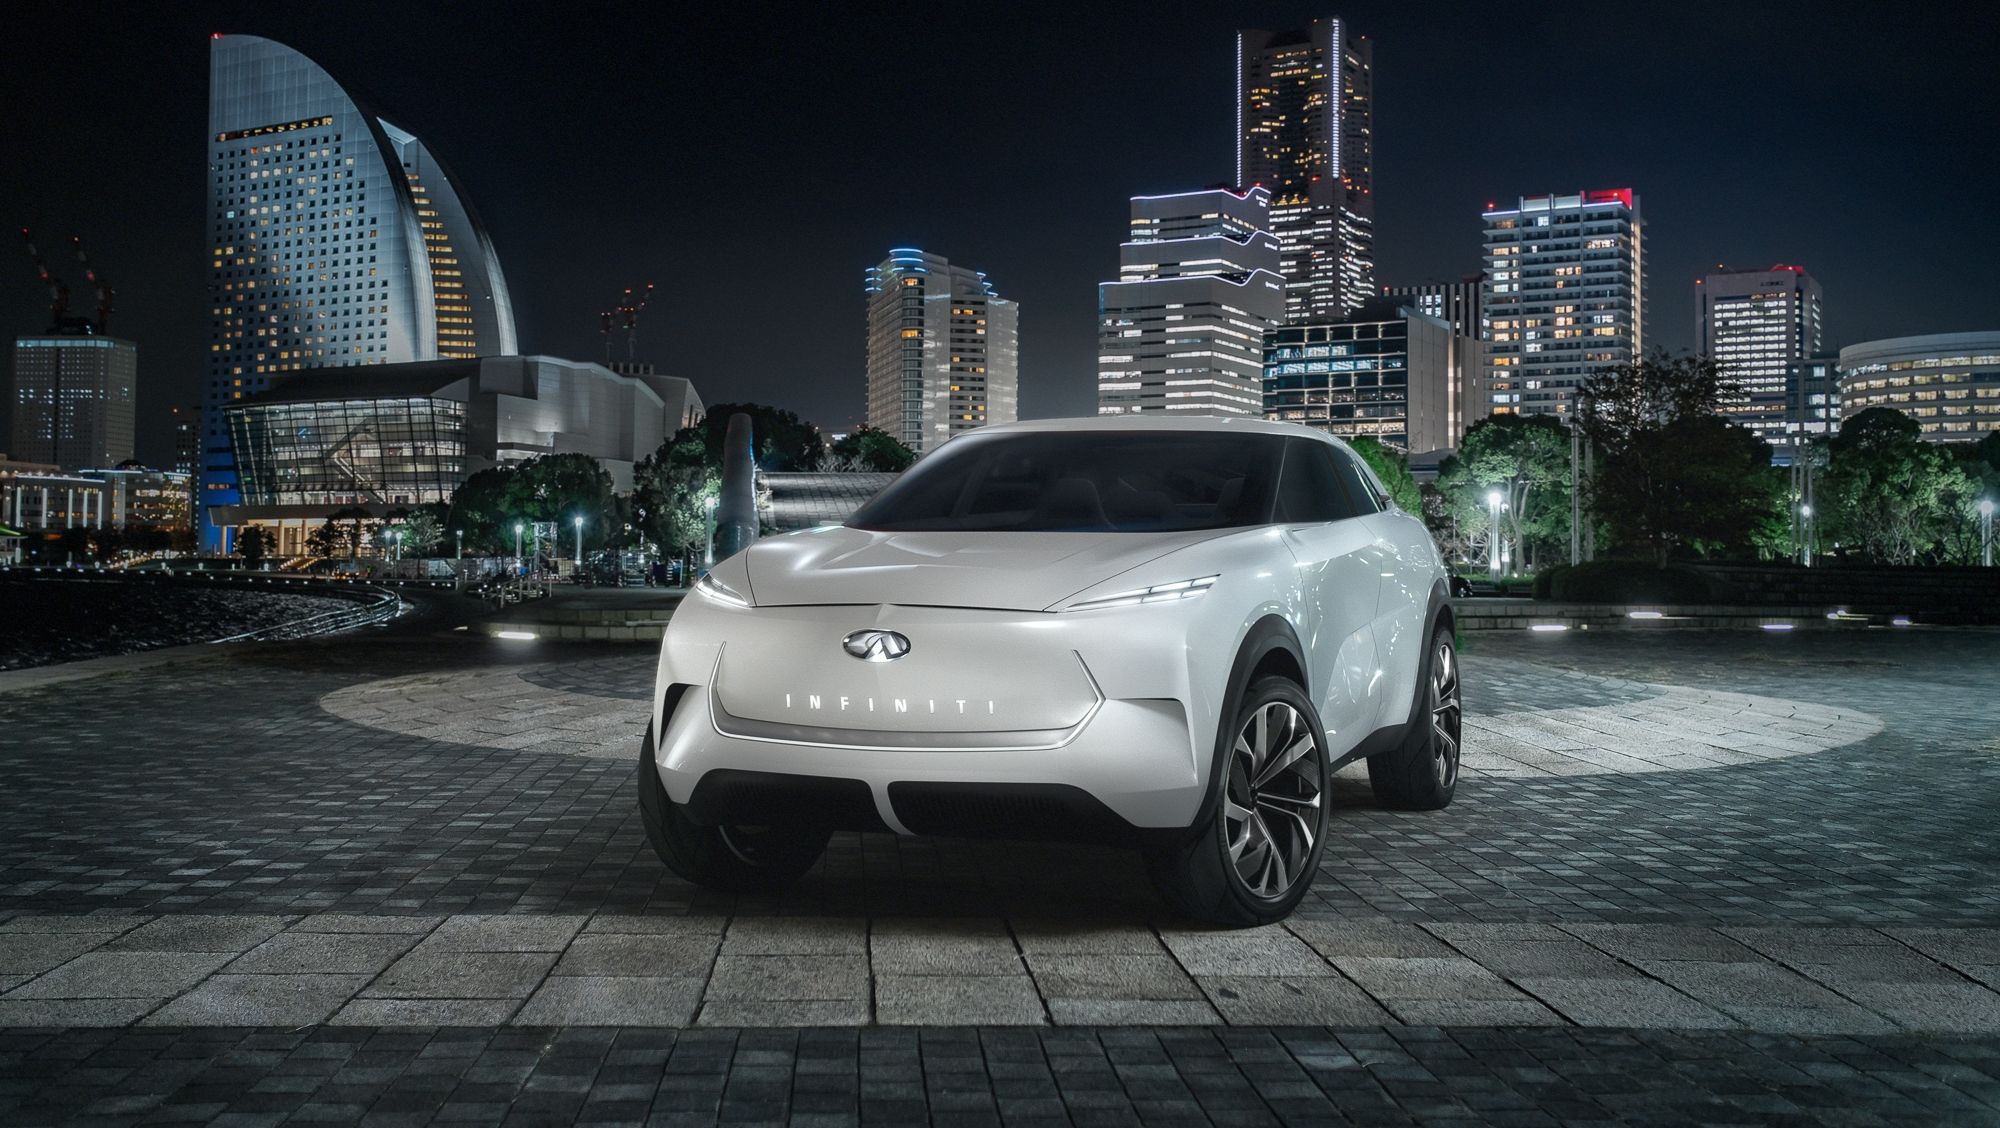 Infiniti Previews Some More Inspiration For The 2019 Detroit Auto